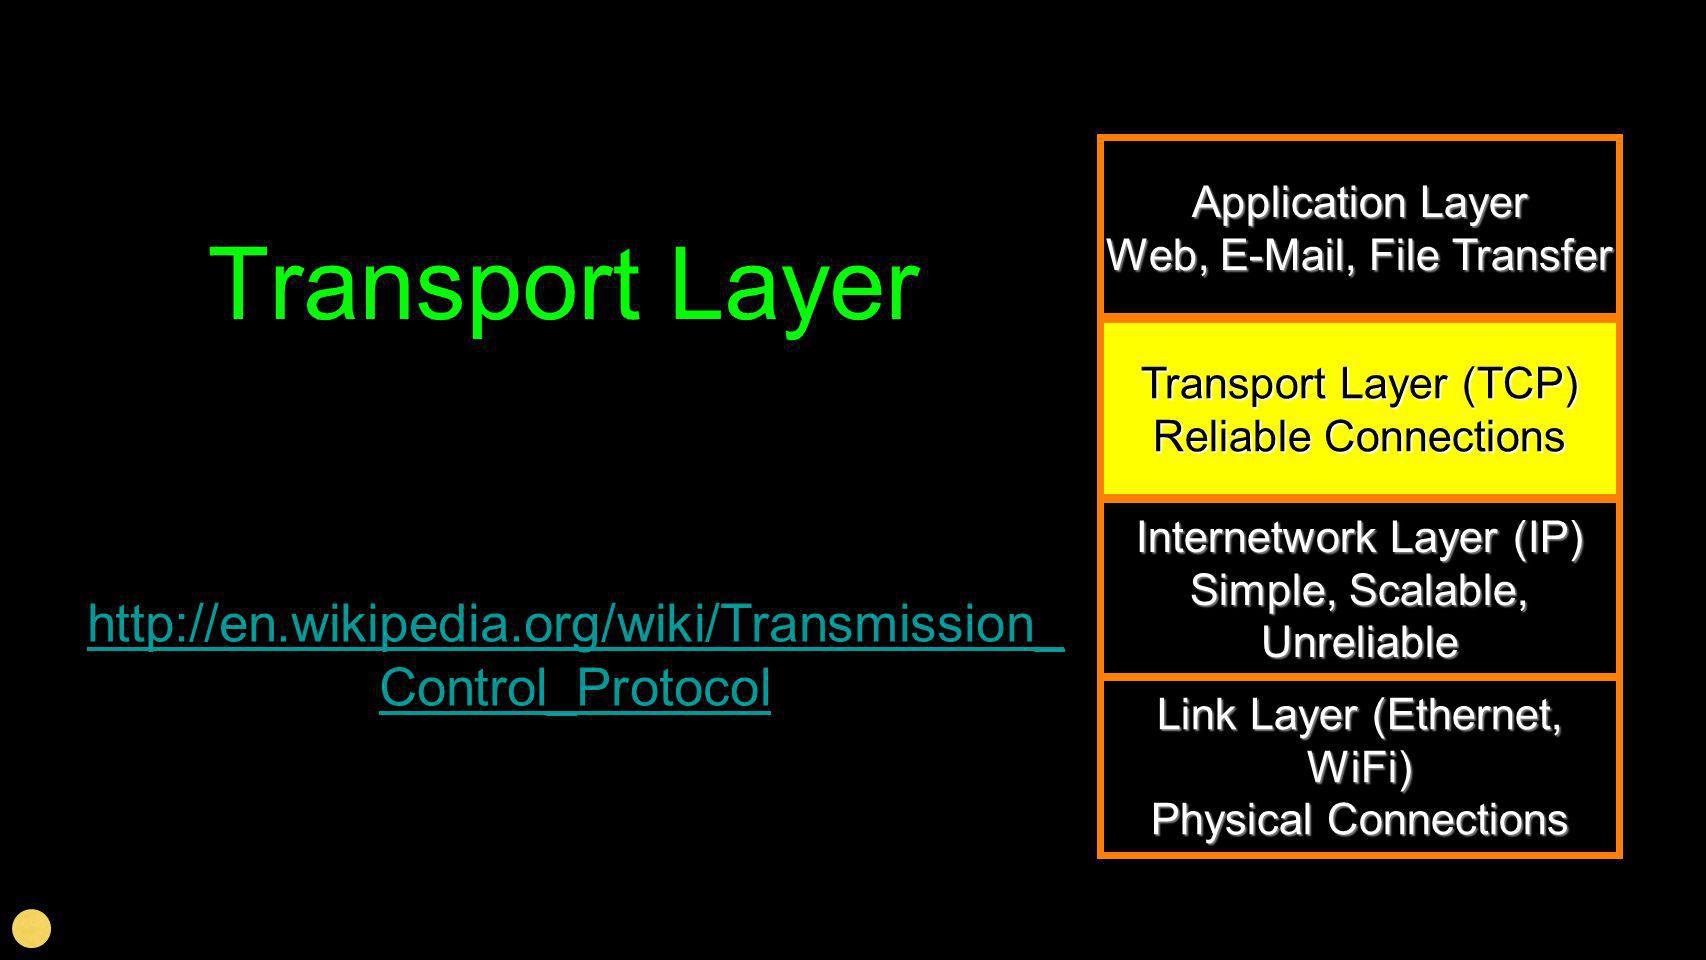 Transport Layer Application Layer. Web, E-Mail, File Transfer. Transport Layer (TCP) Reliable Connections.